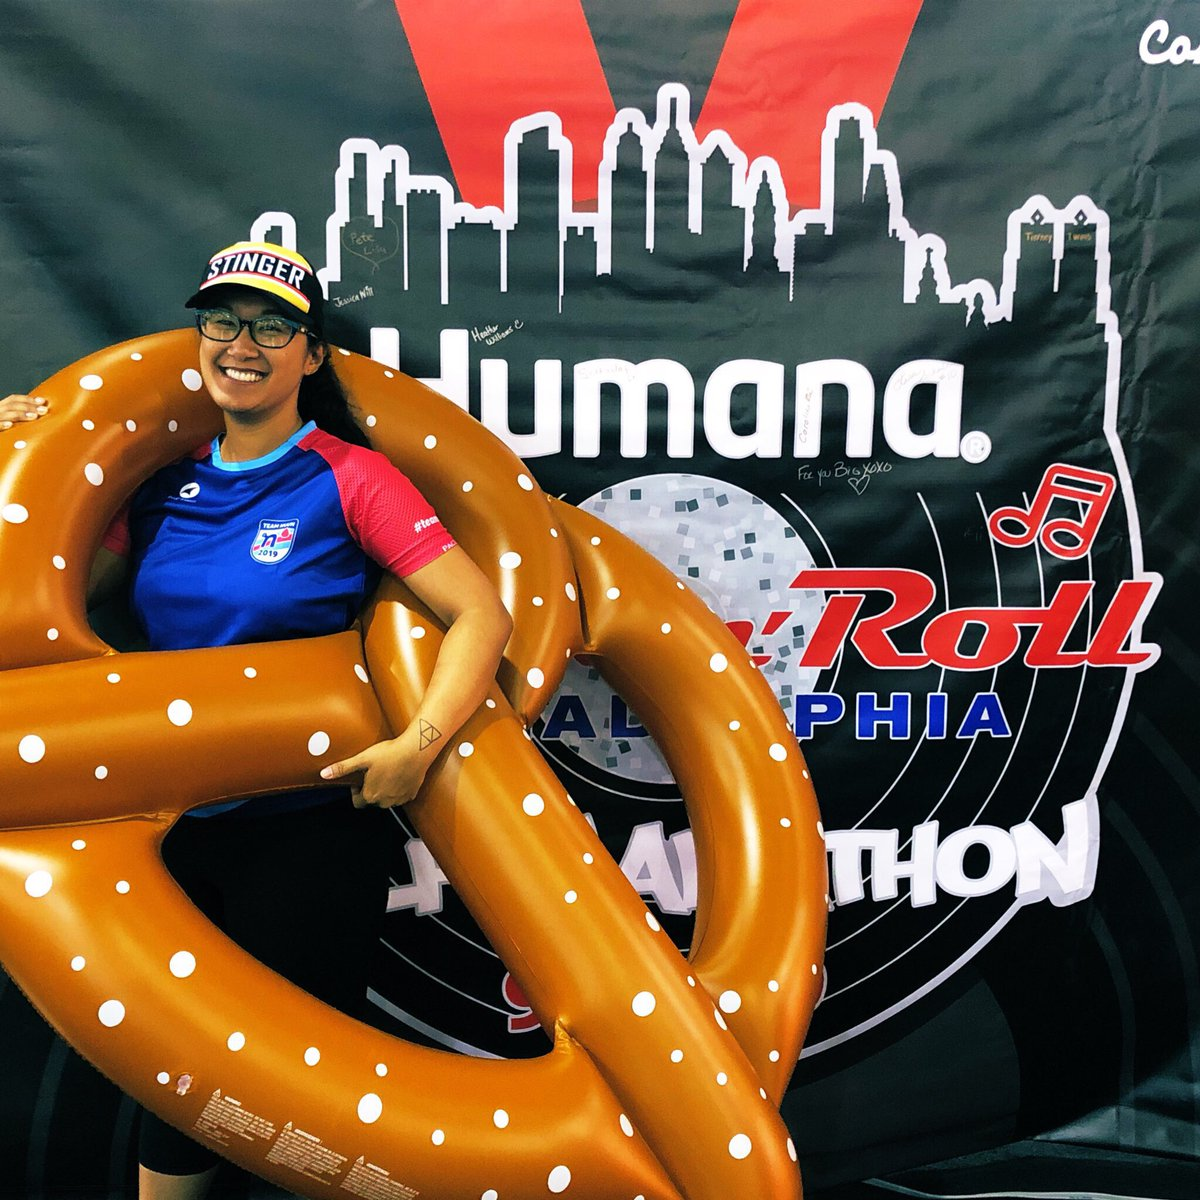 Good luck to everyone running the @RunRocknRoll Philadelphia races today! #teamnuun #hshive<br>http://pic.twitter.com/9tn46SU51r